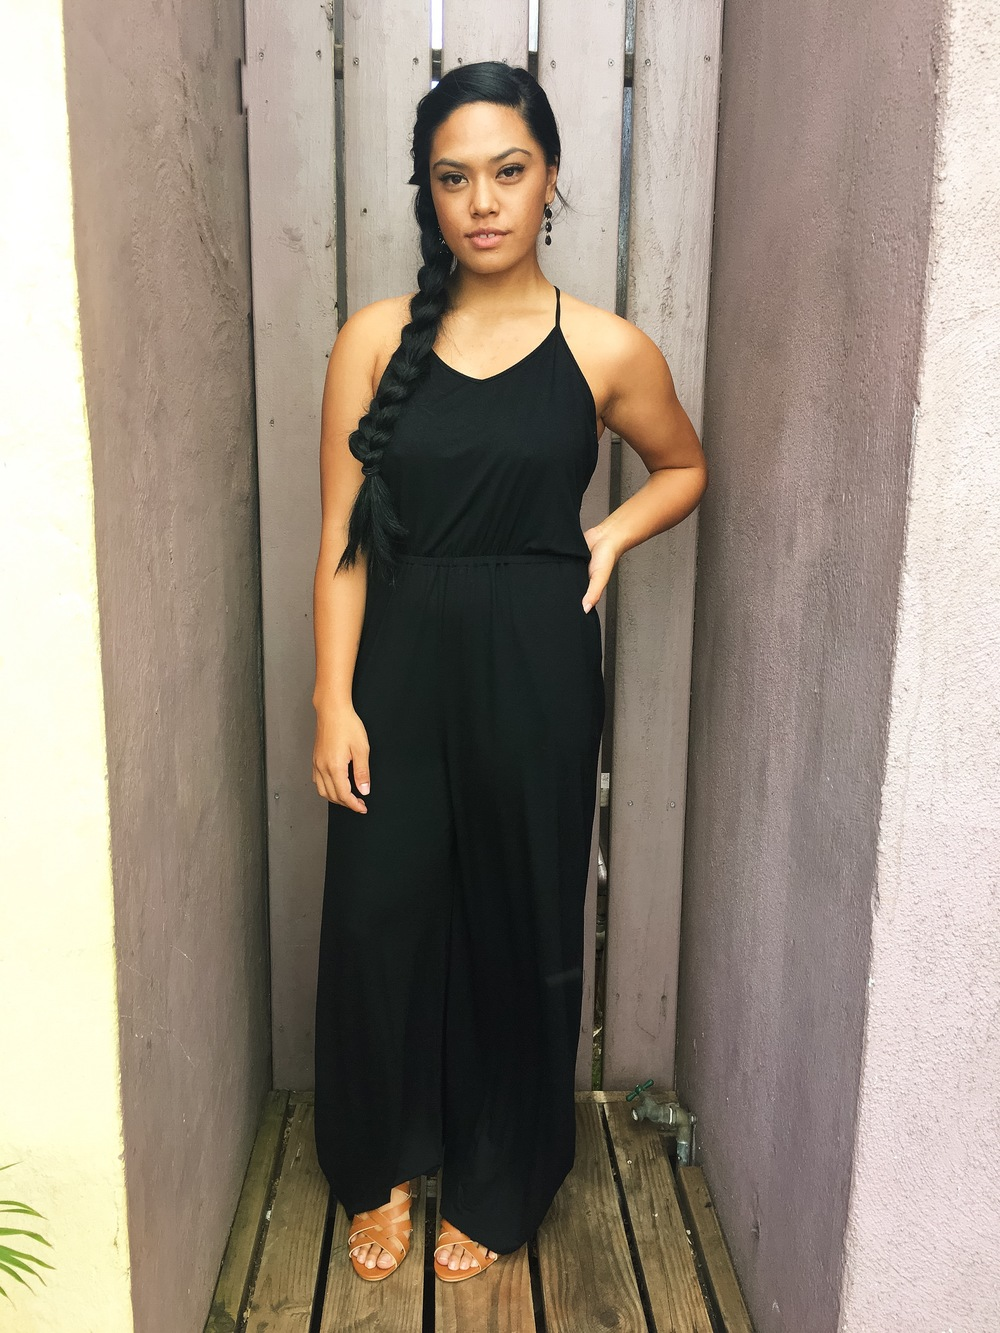 First date, blind date, or date night, girl we got you! This jumpsuit is everything a girl wants for a night out, sexy AND comfortable. Who knew jumpsuits could give us that?